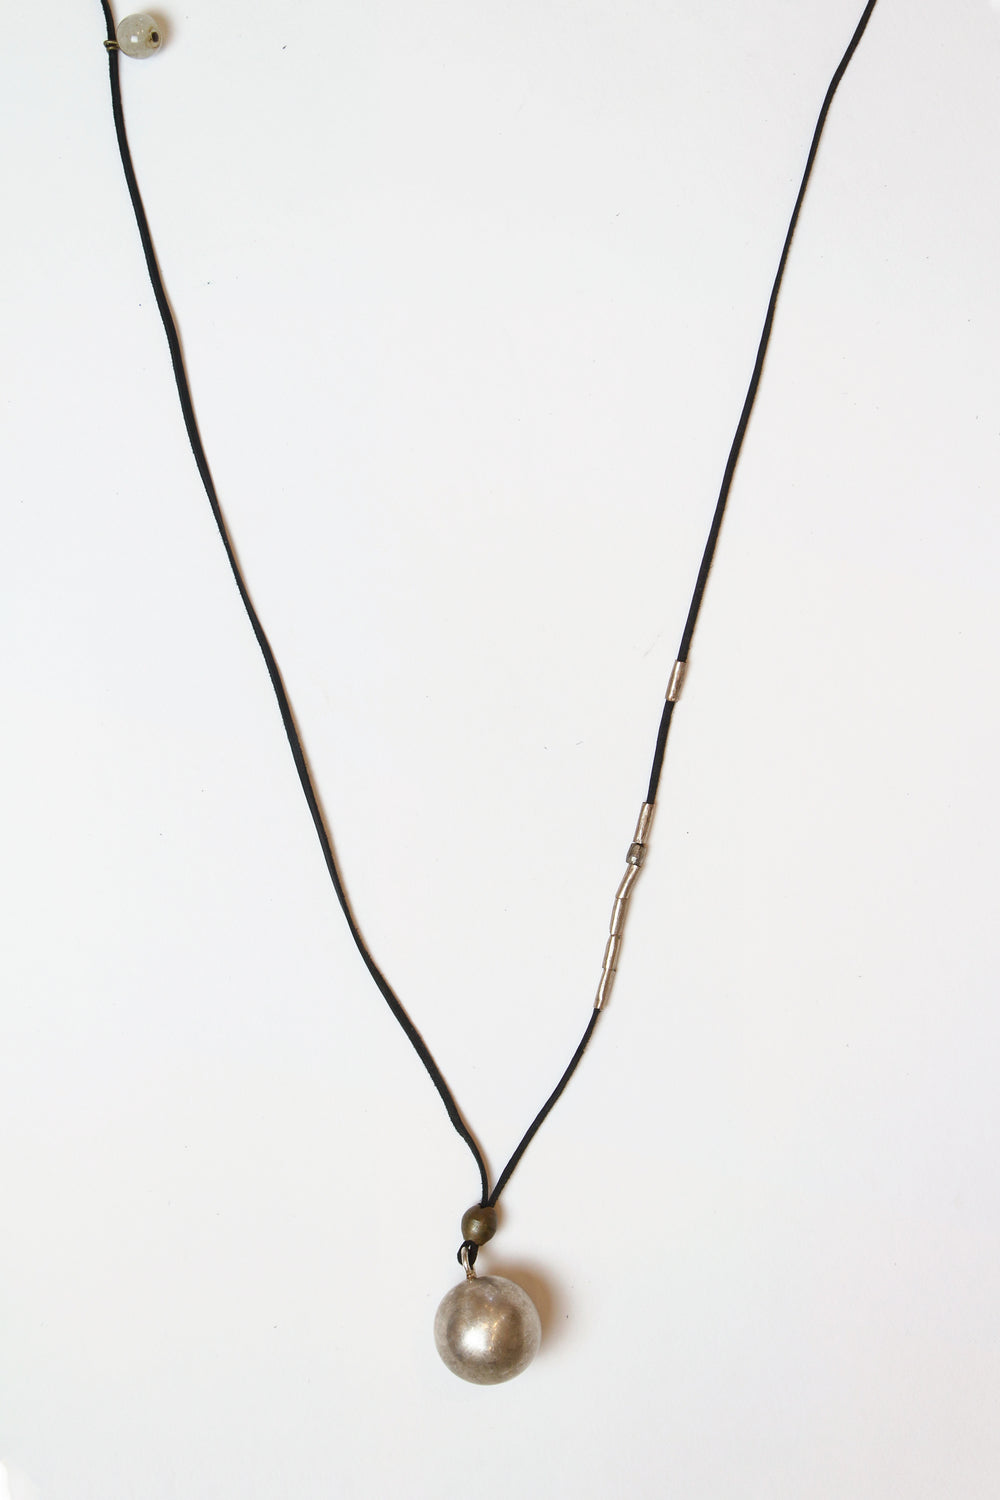 Tamayura Necklace, F